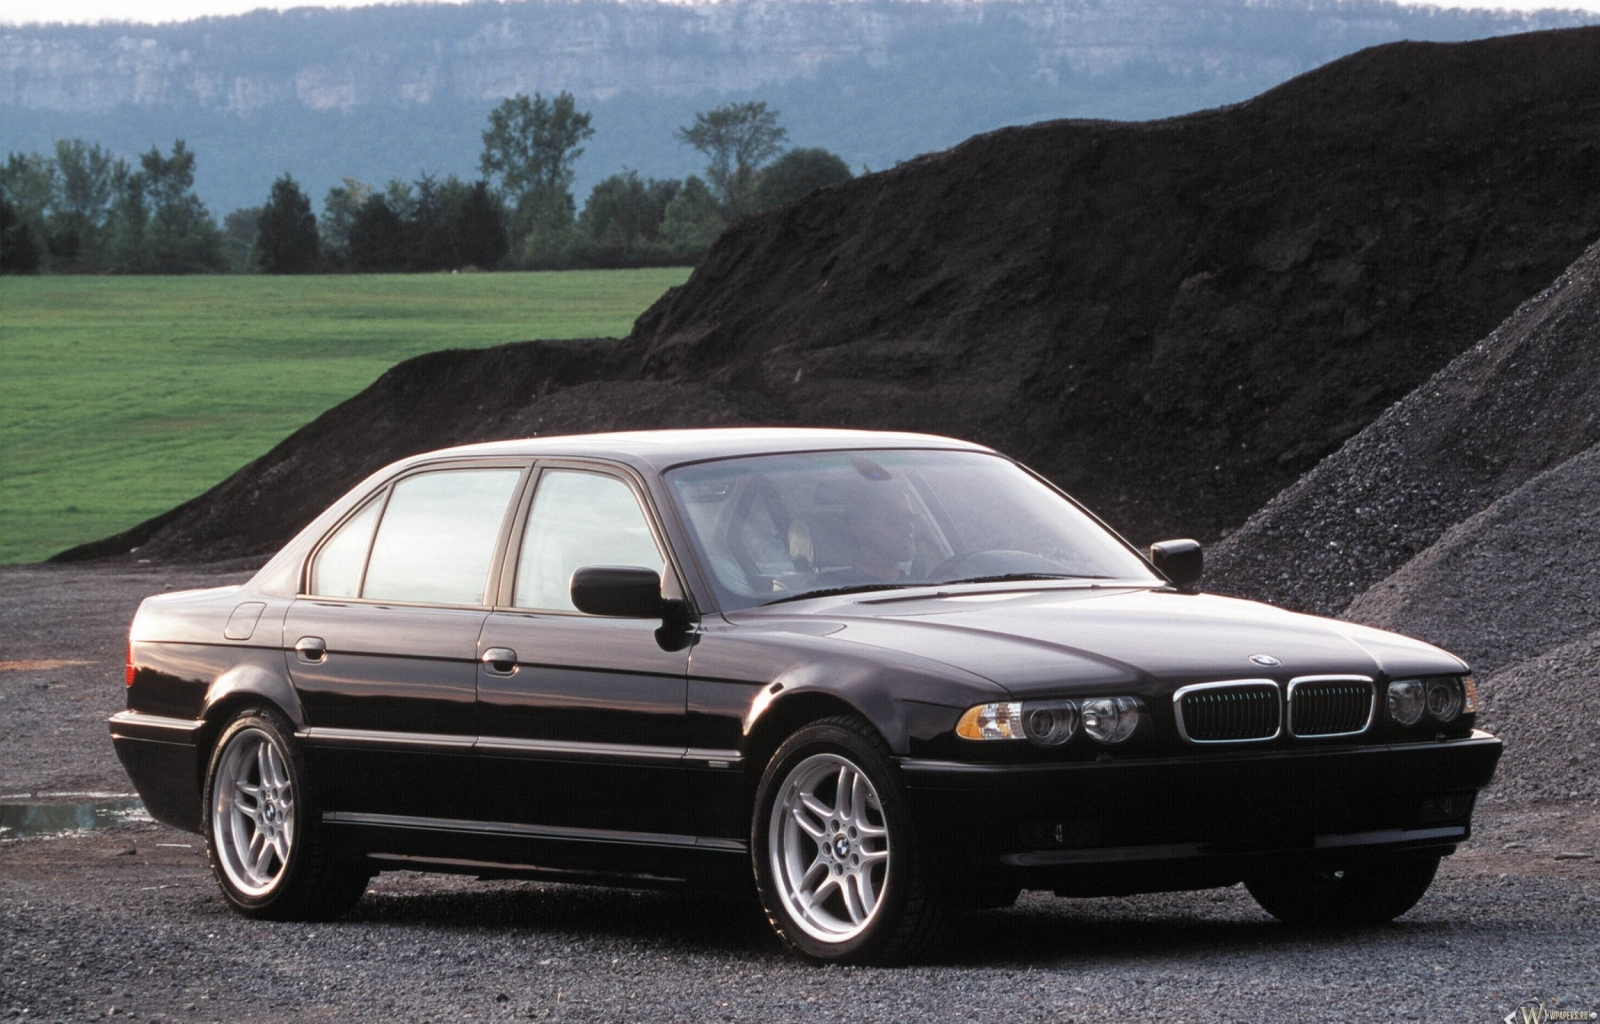 BMW 7 series 750i 1999 photo - 4